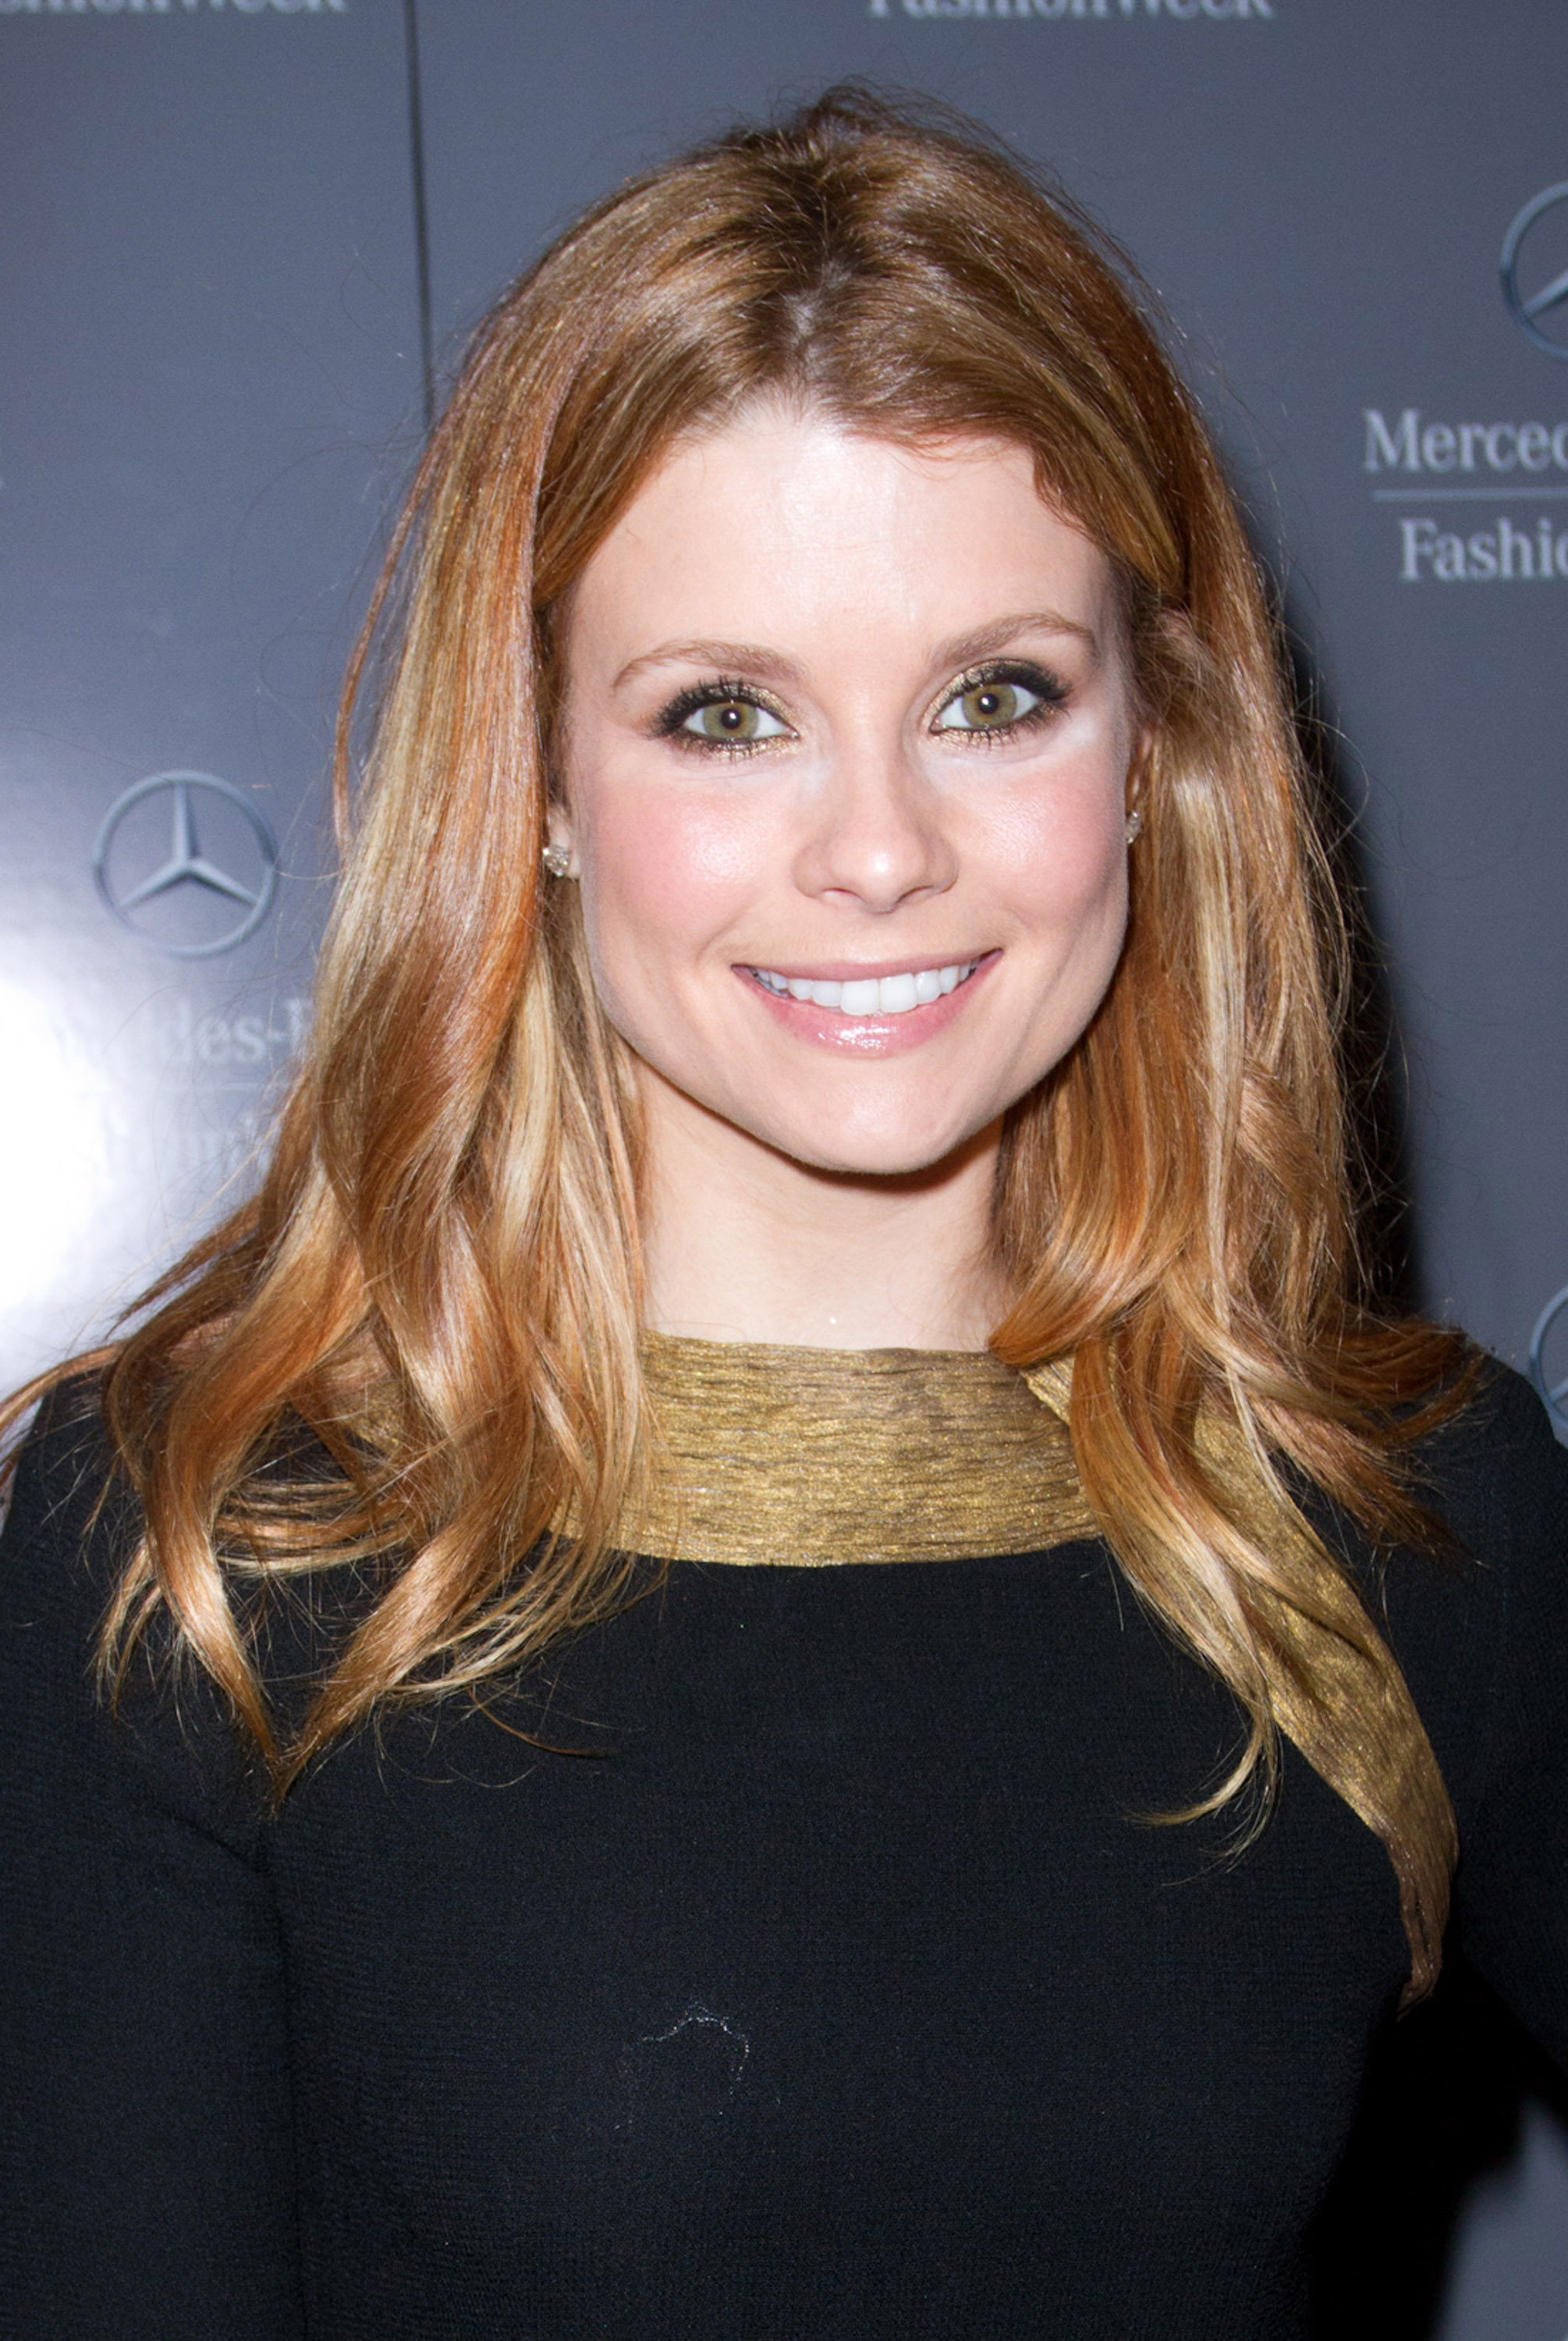 Joanna Garcia-Swisher during Fashion Week.